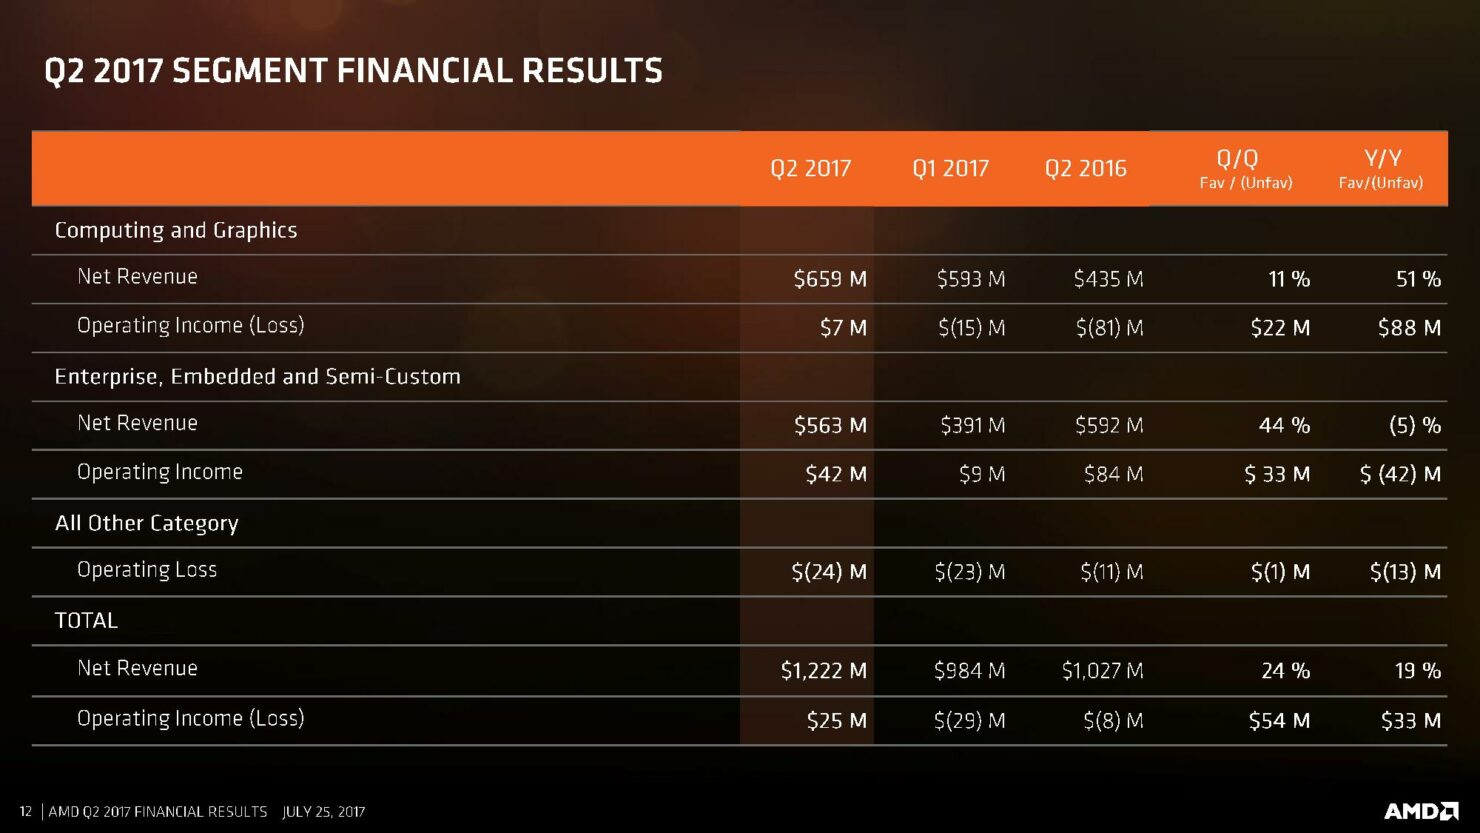 amd-cfo-commentary-slides-q2-17-page-012